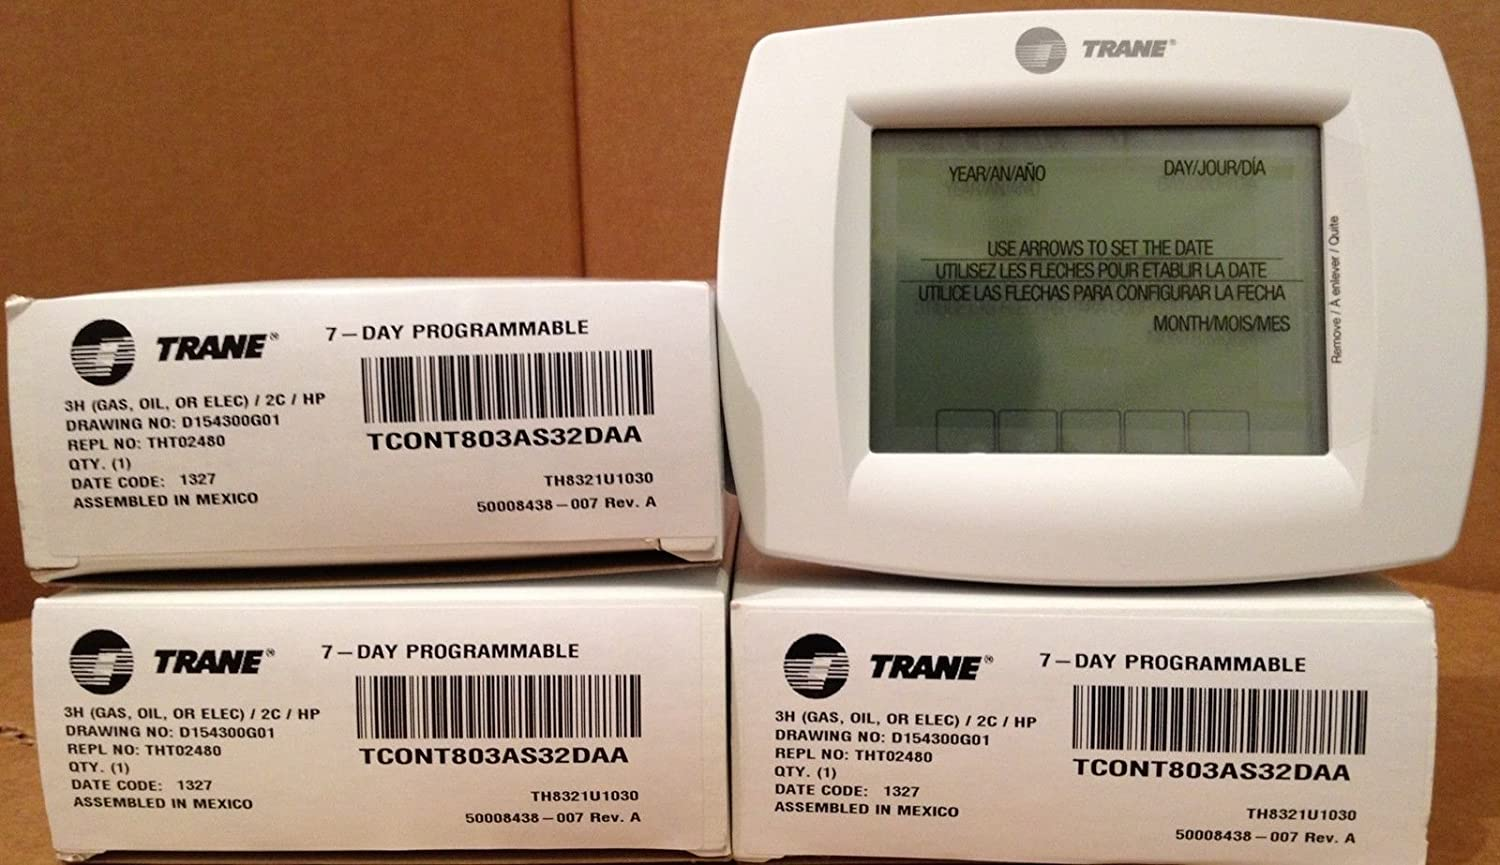 Amazon.com : Trane Commercial Programmable Thermostat - TCONT803AS32DAA : Everything Else